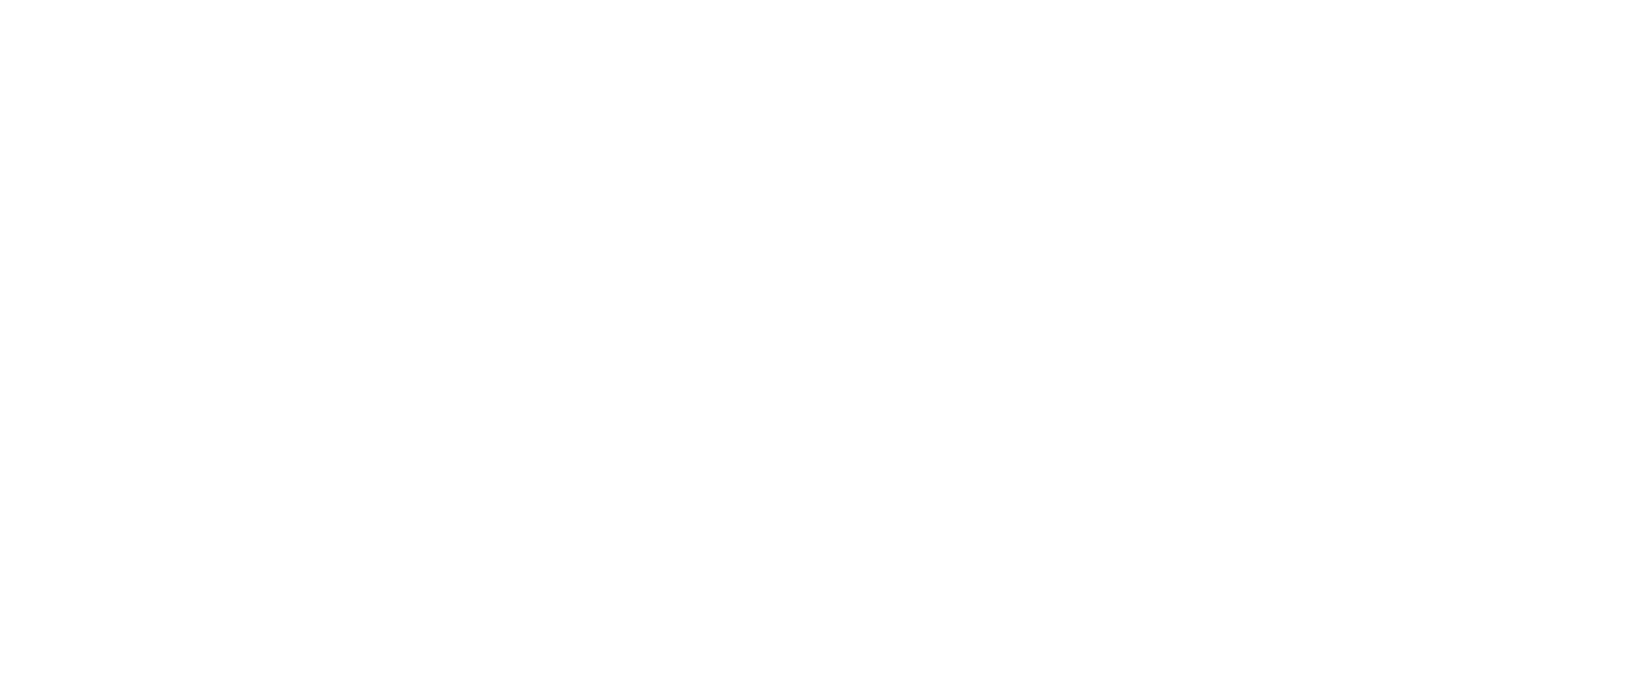 ms blues logo reverse